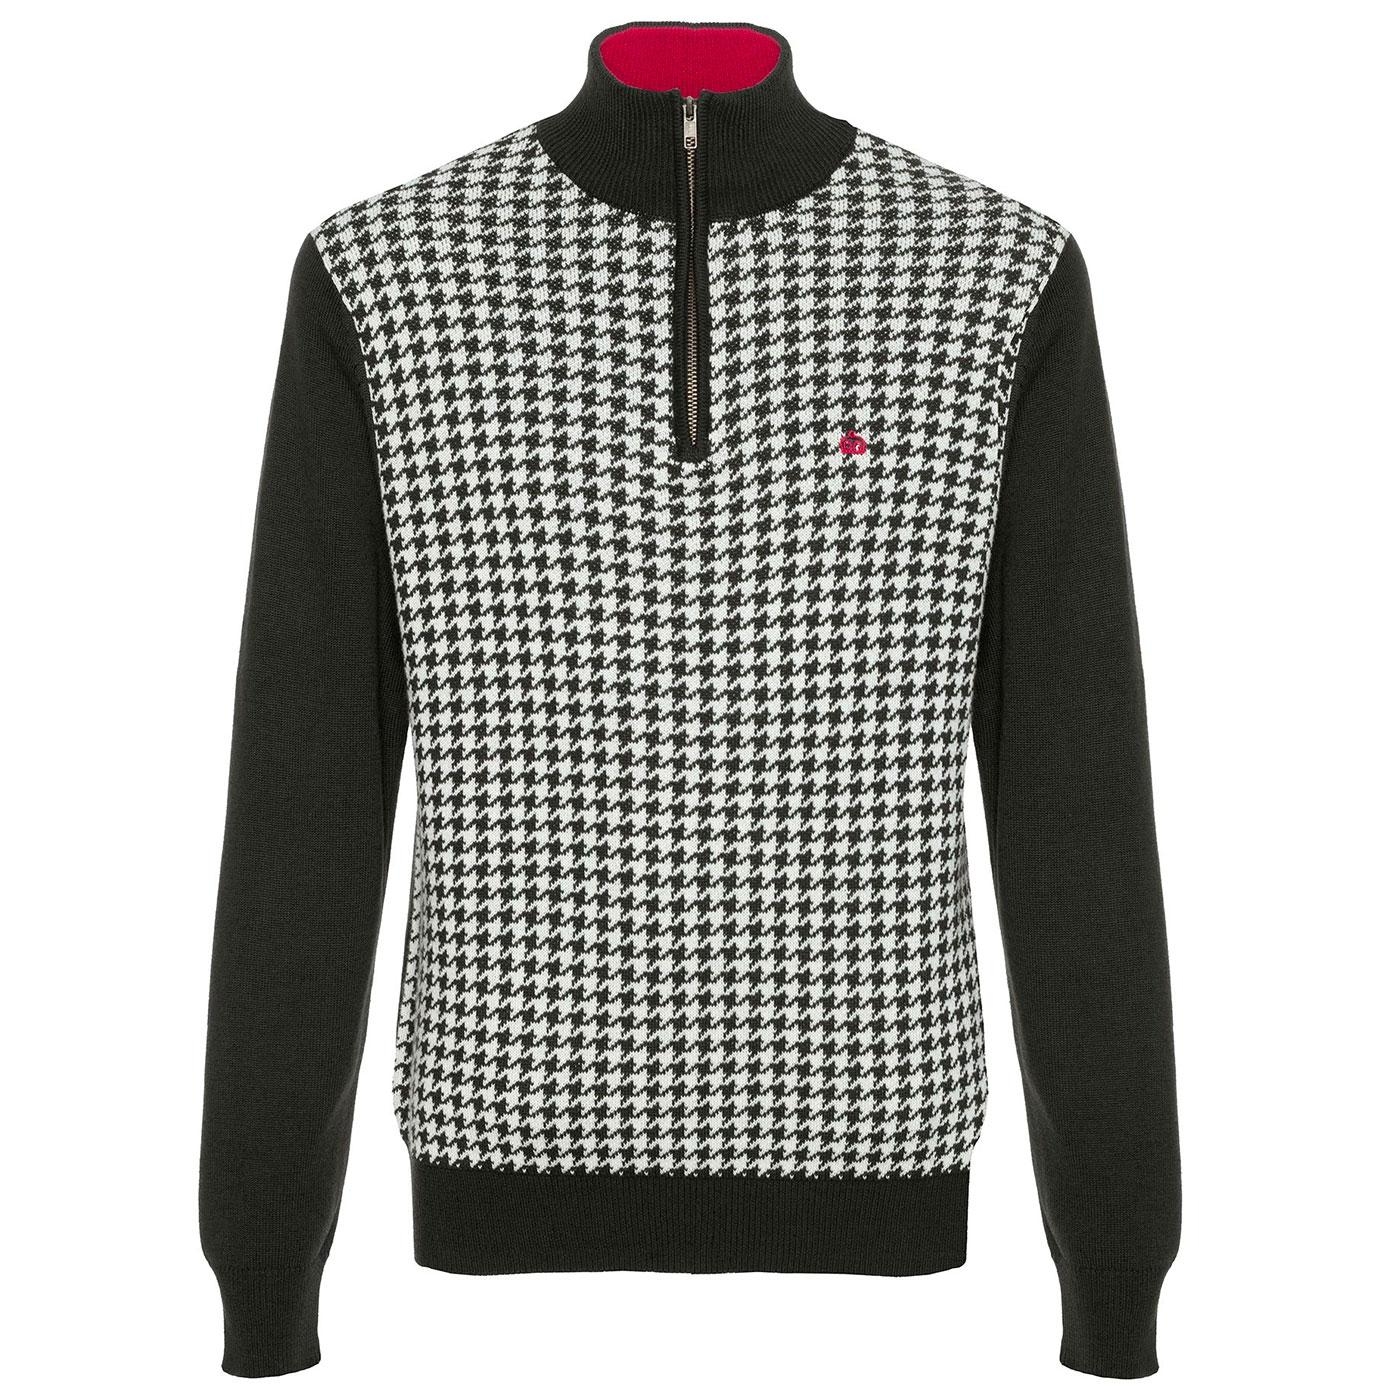 Lockhill MERC Retro Mod Dogtooth Knitted Zip Top B